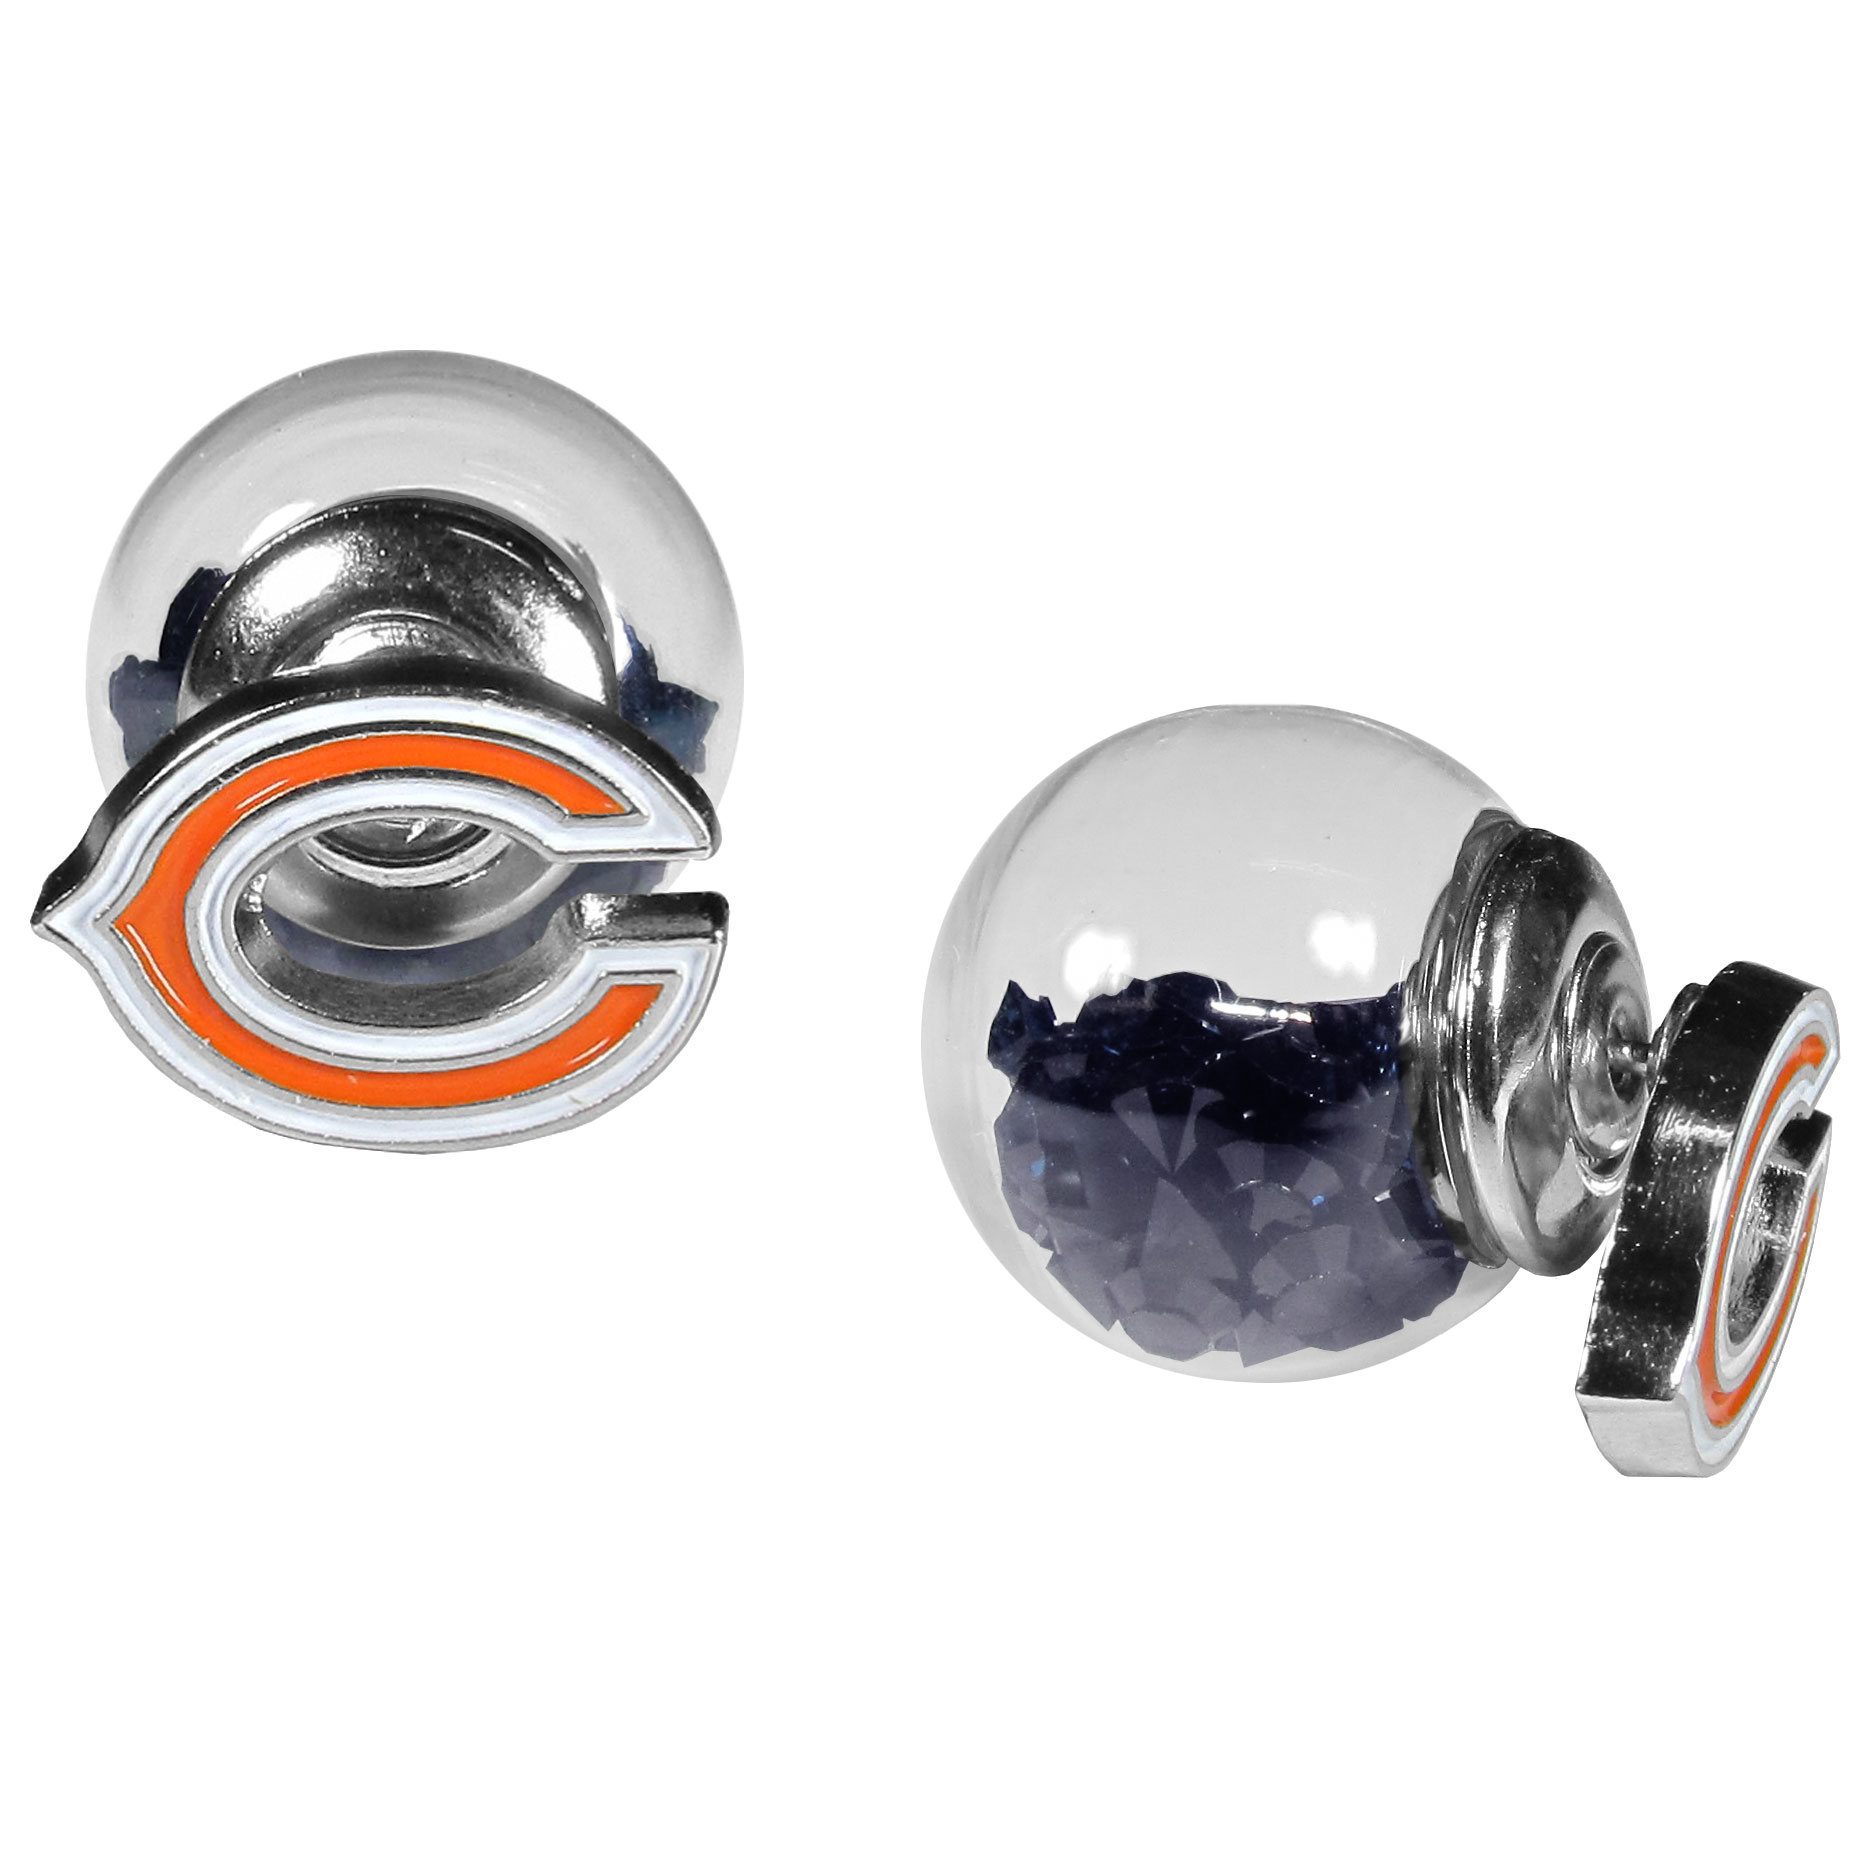 Chicago Bears Front/Back Earrings - Get in on one of the most popular trends in jewelry, front and back earrings! This must-have style is all of over the red carpets and we taken this contemporary look and paired it with your love of the Chicago Bears! The front of the earring is a sporty team logo and the back of these eye-catching earrings is a glass ball filled with colored crystal beads. This piece is perfect for a fashion-forward fan, with bold taste and trend-setting style.